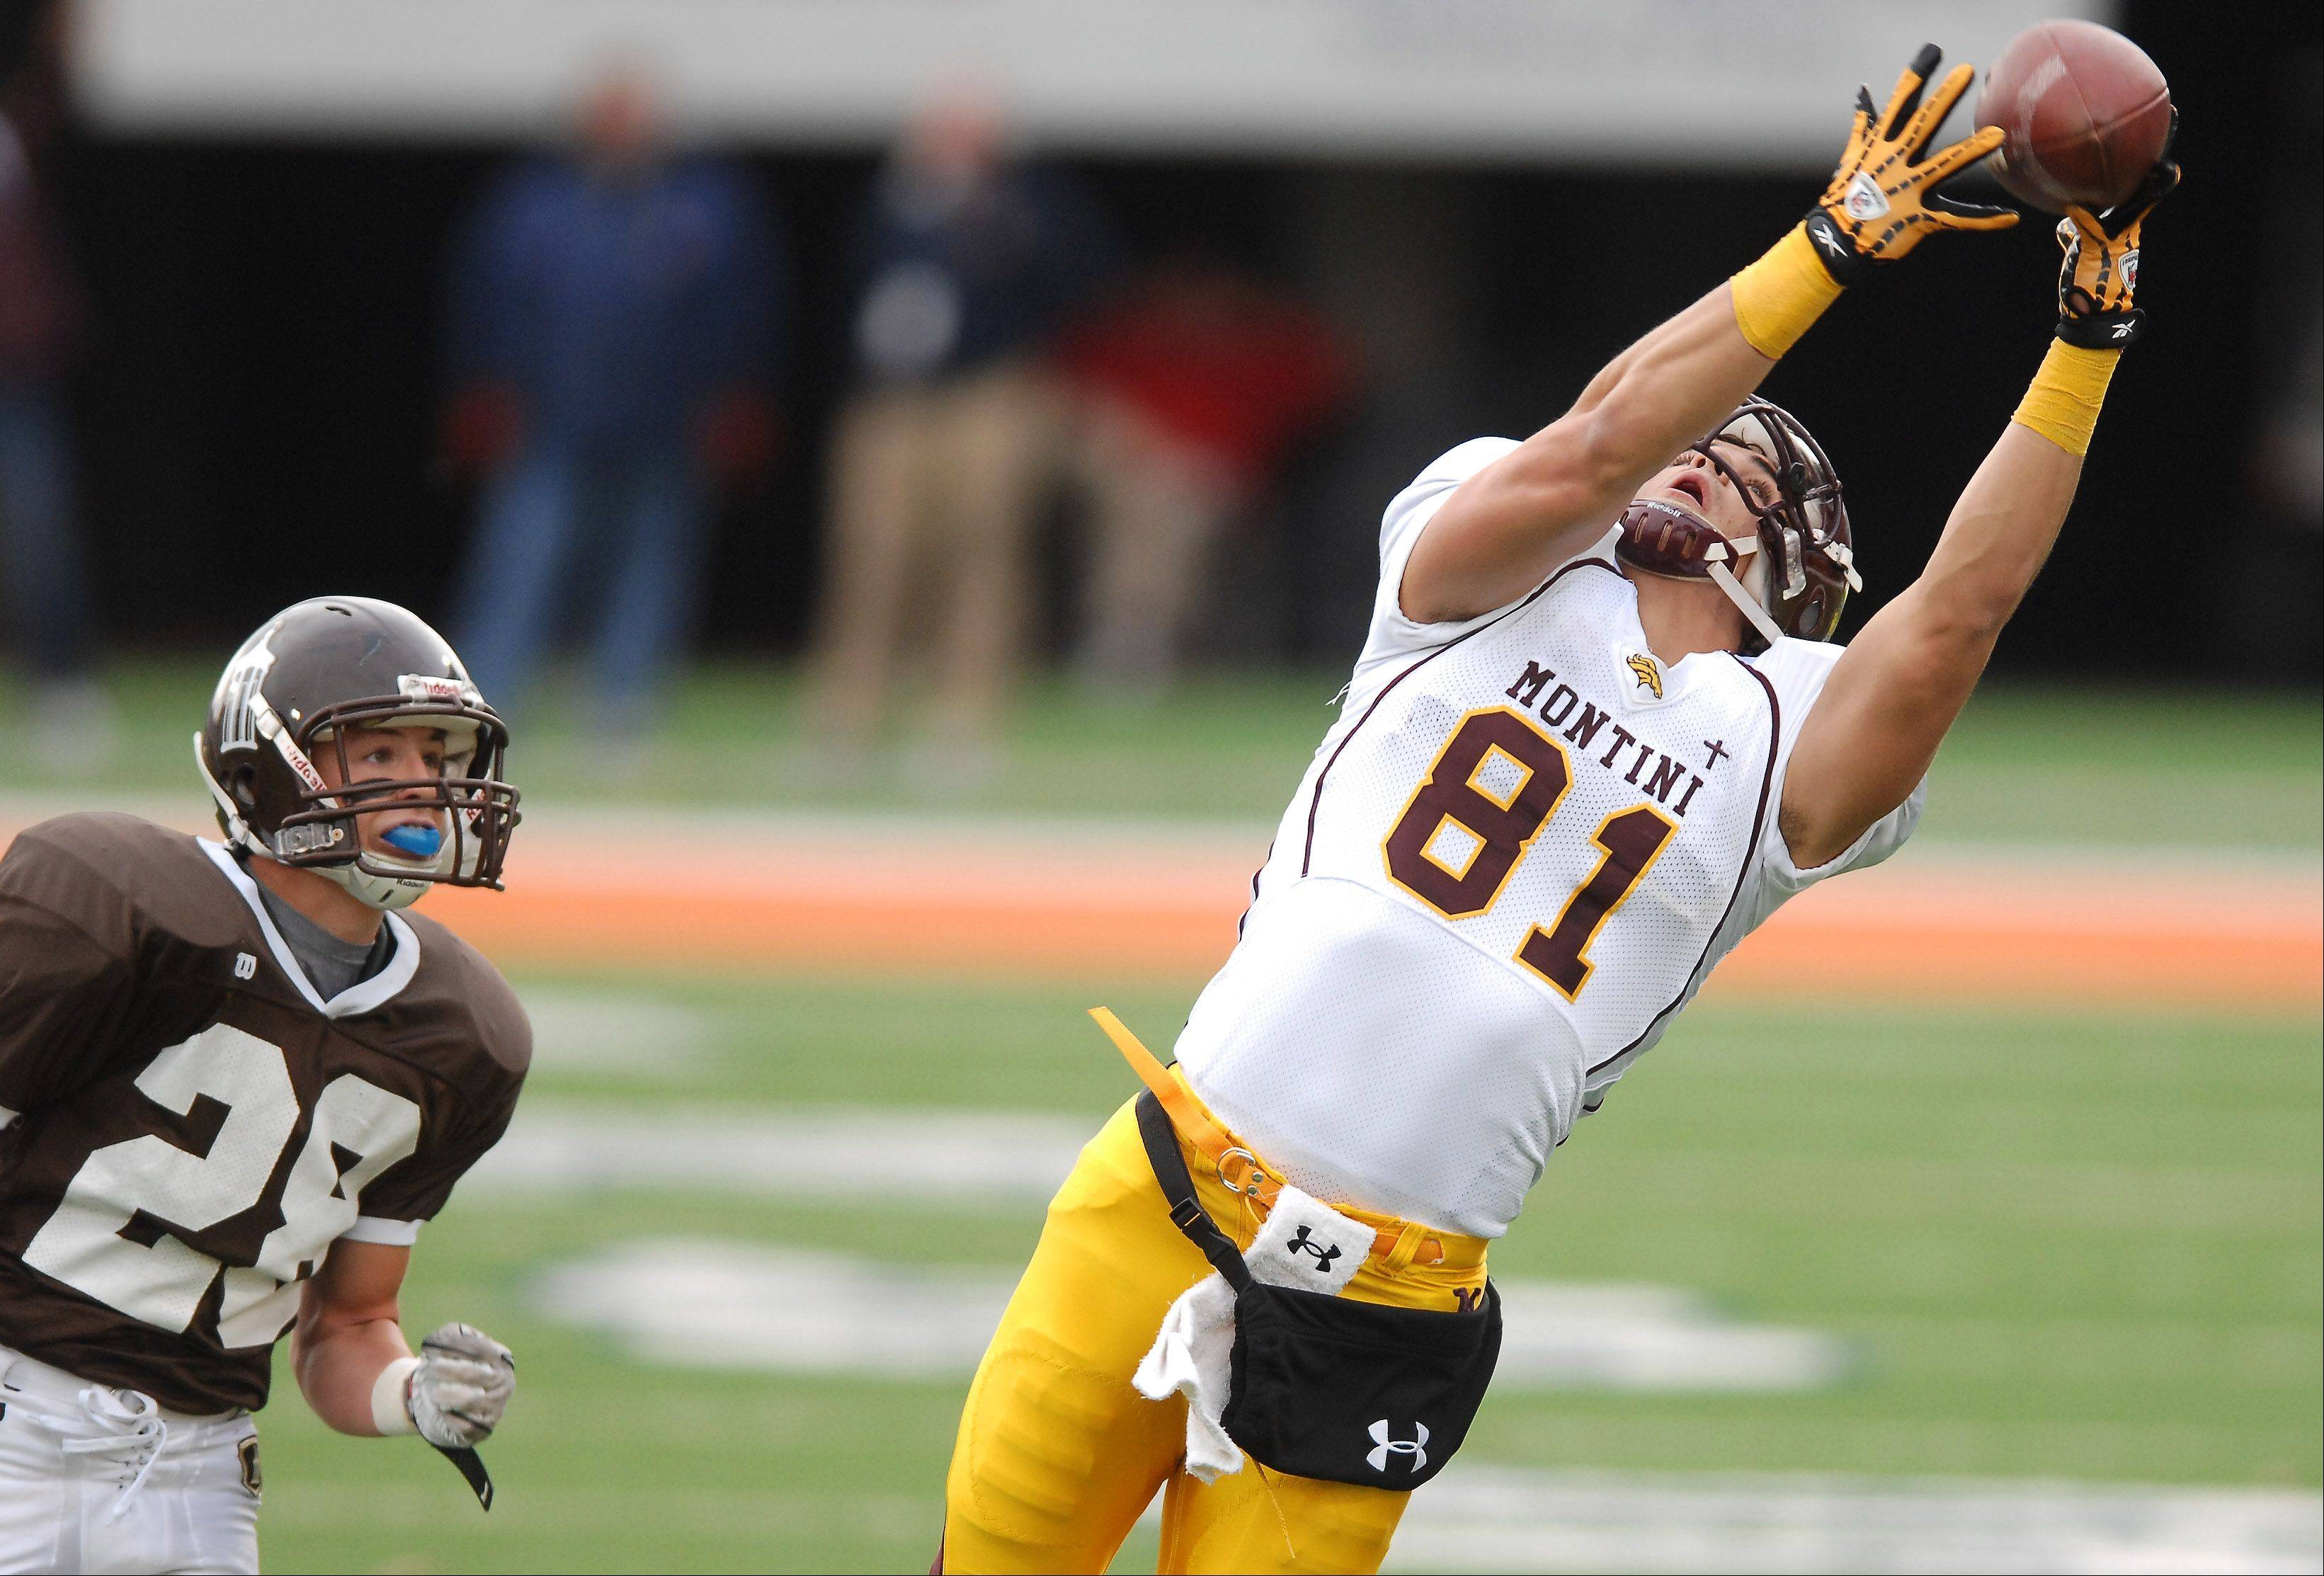 Montini's Jordan Westerkamp hauls in a long pass in front of Joliet Catholic Academy's Grant Harrison during the IHSA Class 5A state football championship game in Champaign Saturday.